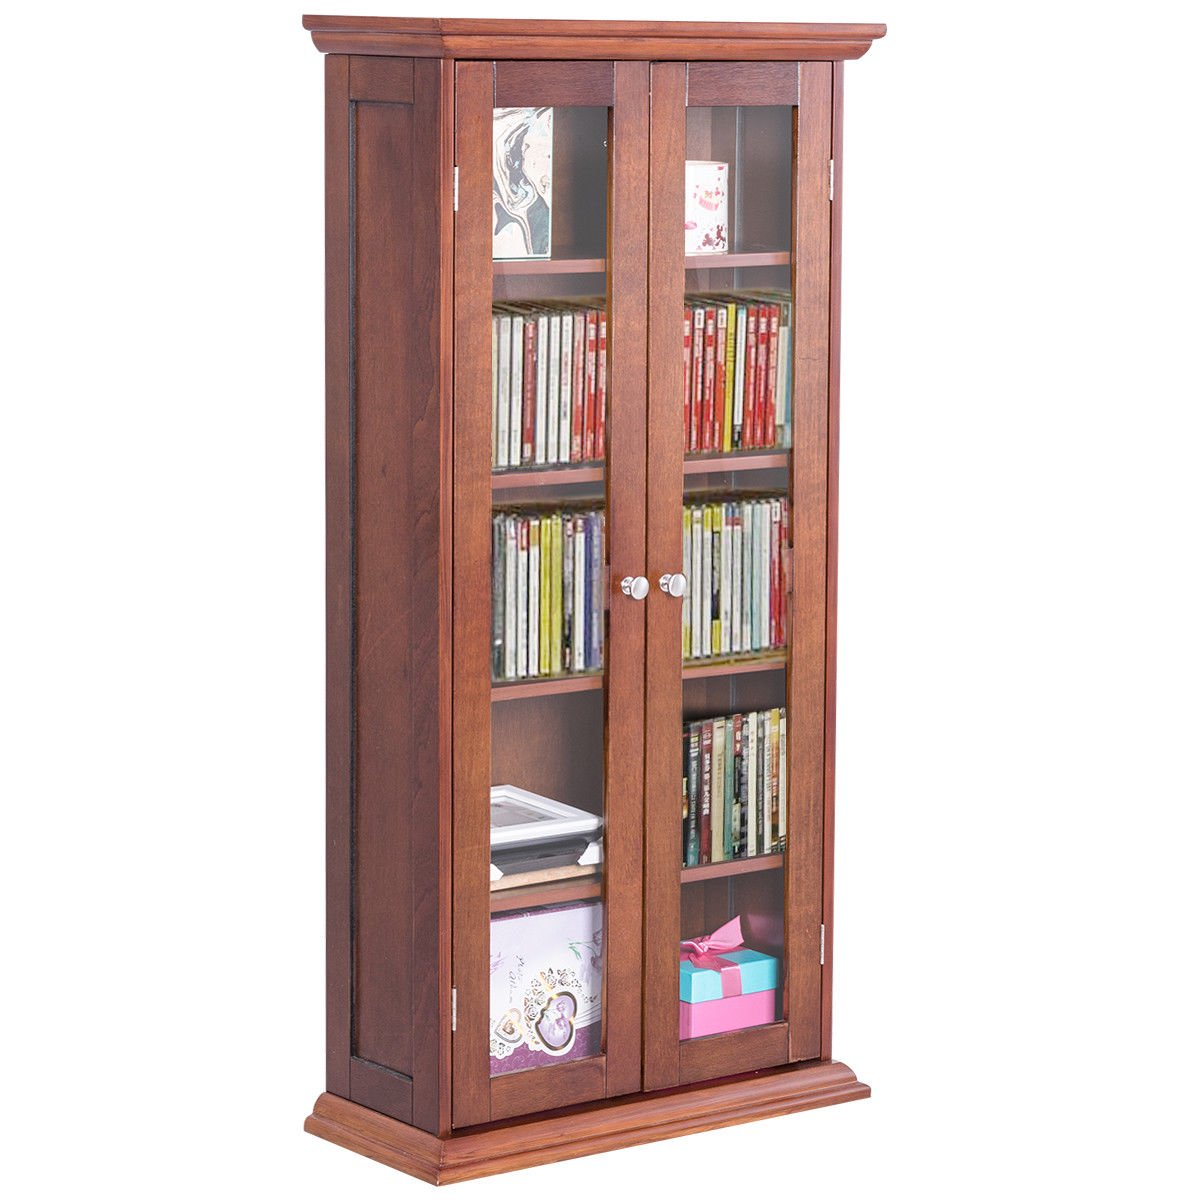 Costway 44.5u0027u0027 Wood Media Storage Cabinet CD DVD Shelves Tower Glass Doors  Walnut